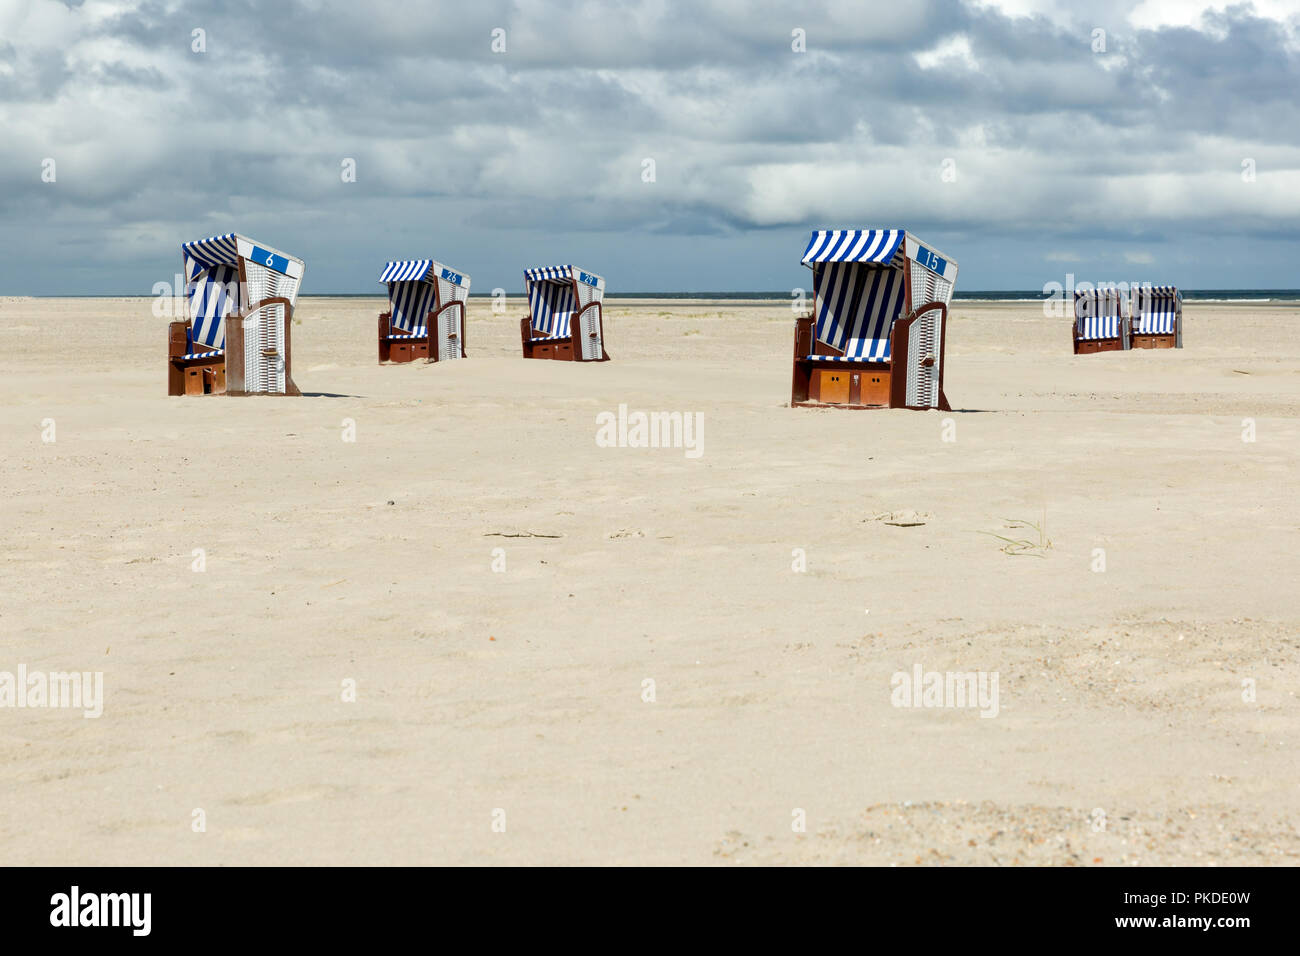 Roofed wicker beach chairs at the coastline of the German island Norderney in front of the ocean. Wide angle view Stock Photo